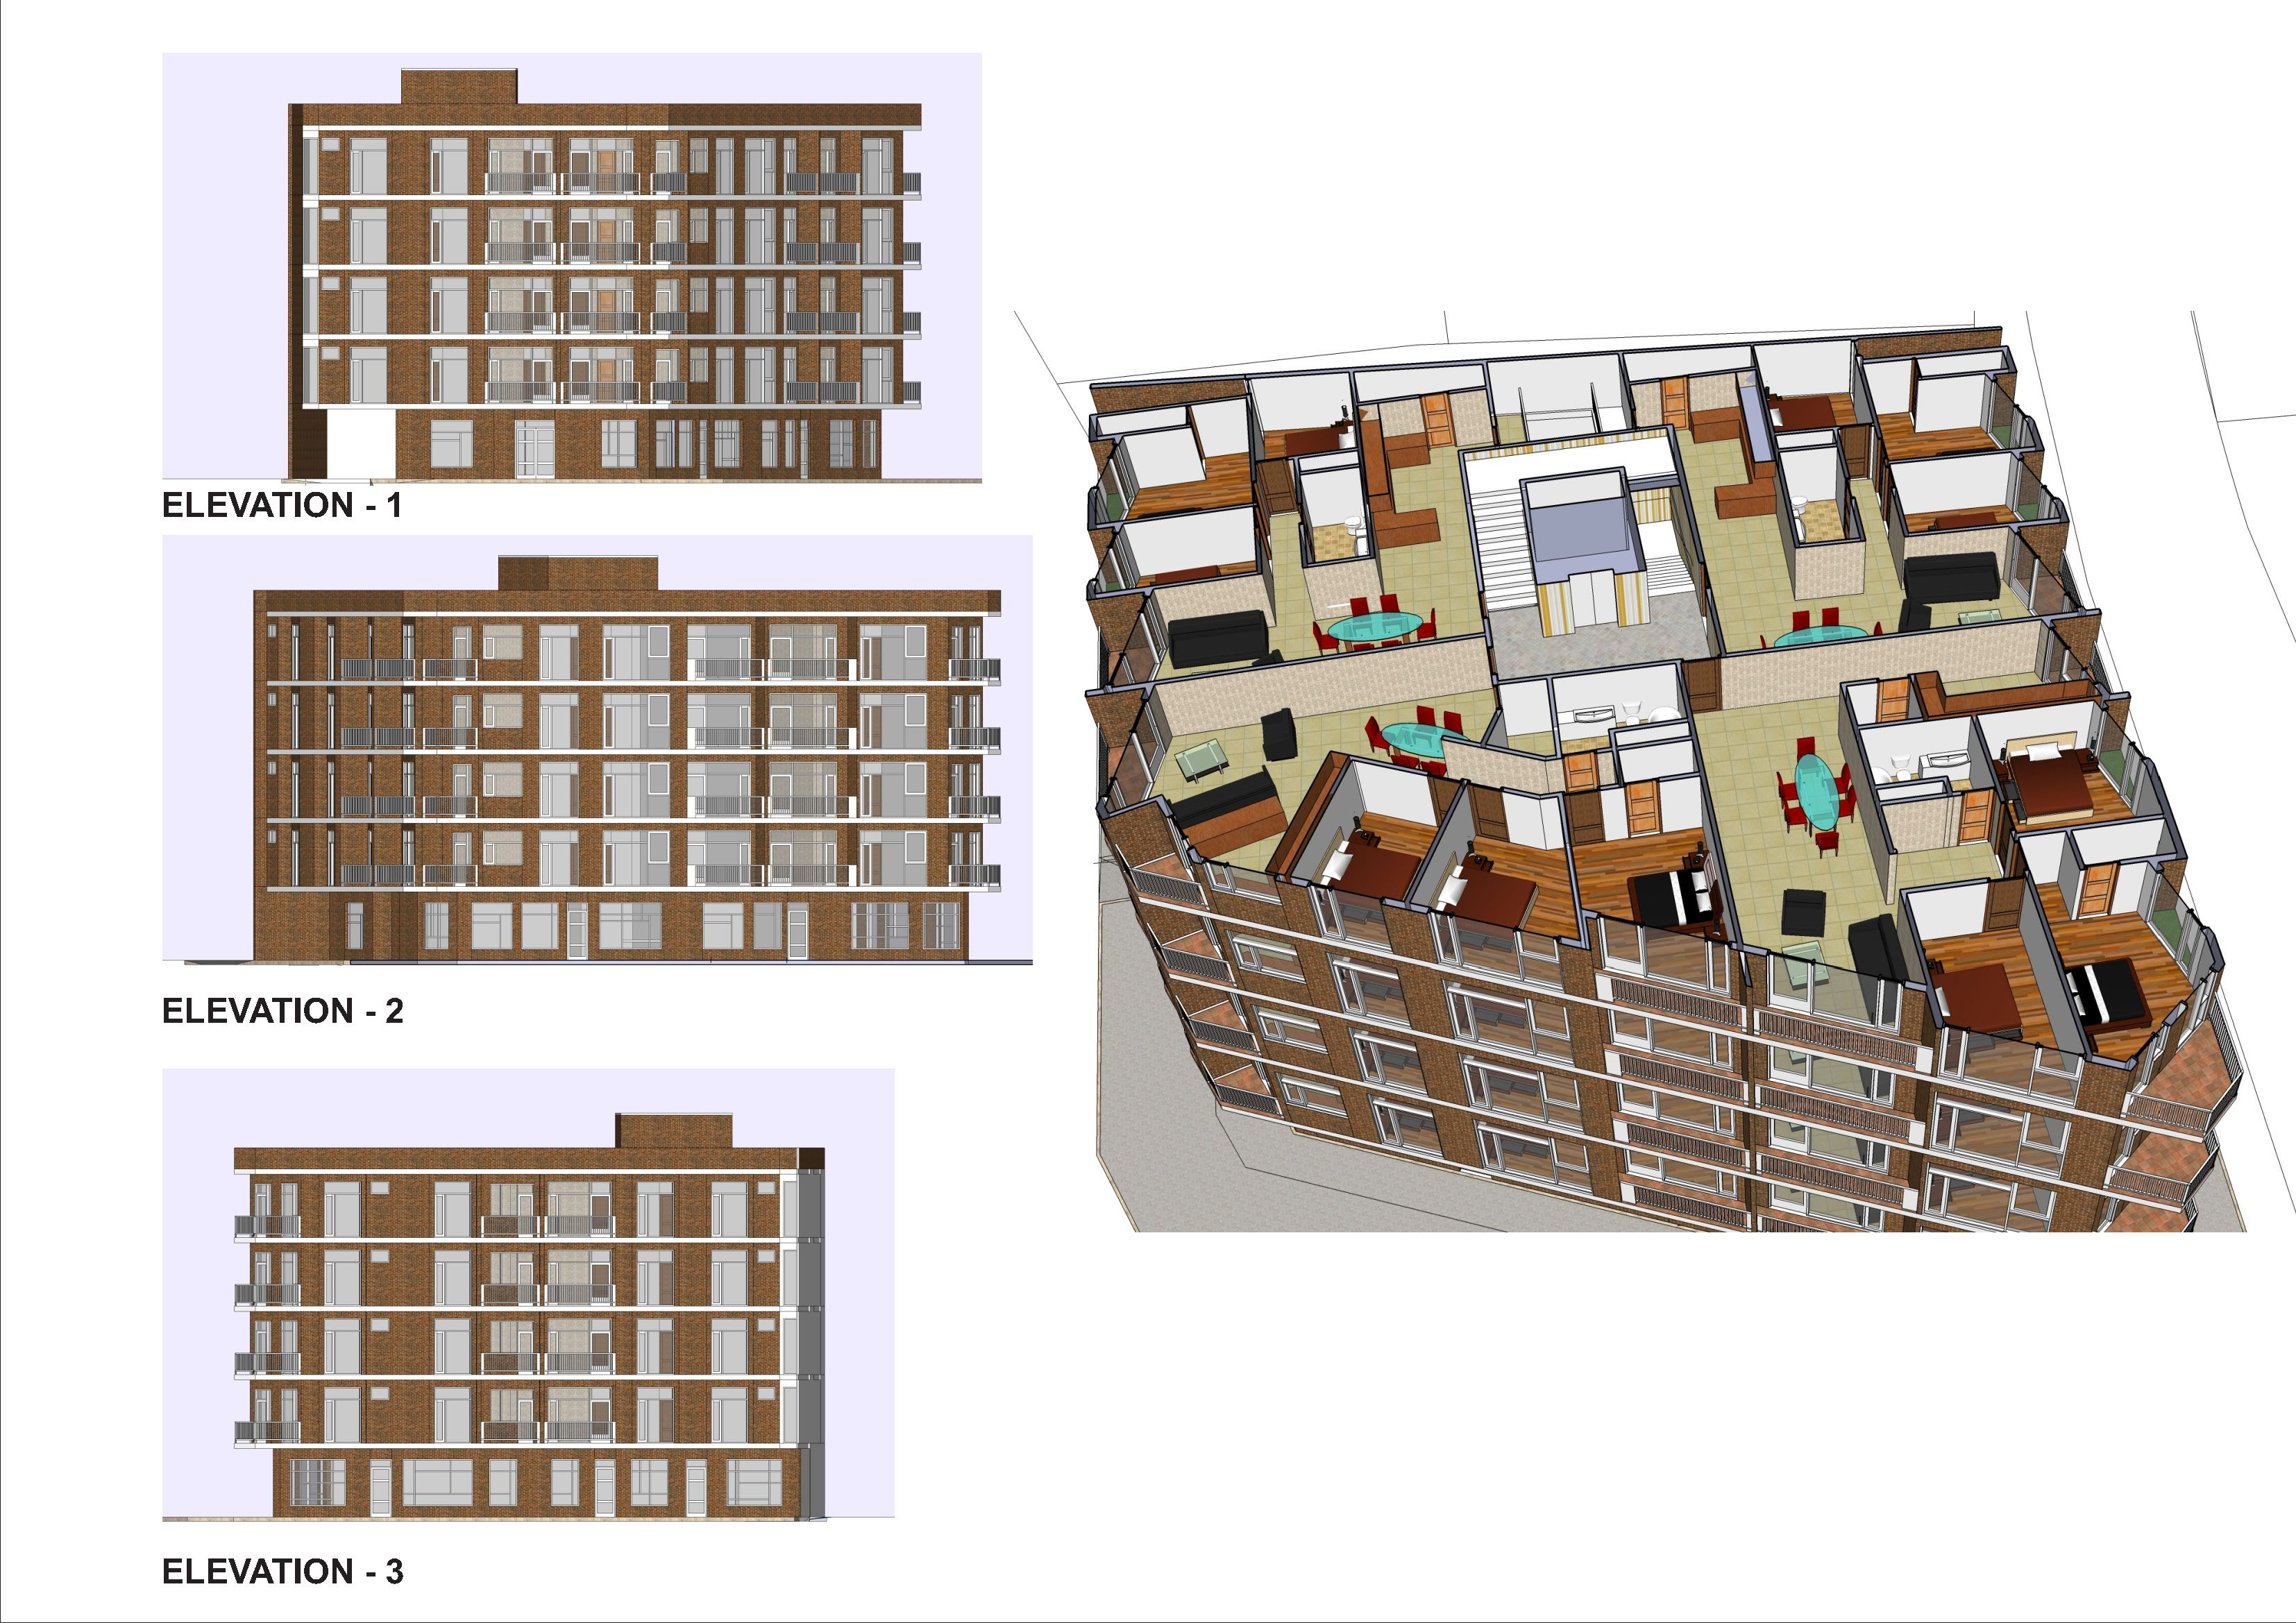 Apartment building plans location aksaray turkey new for Small residential building plan